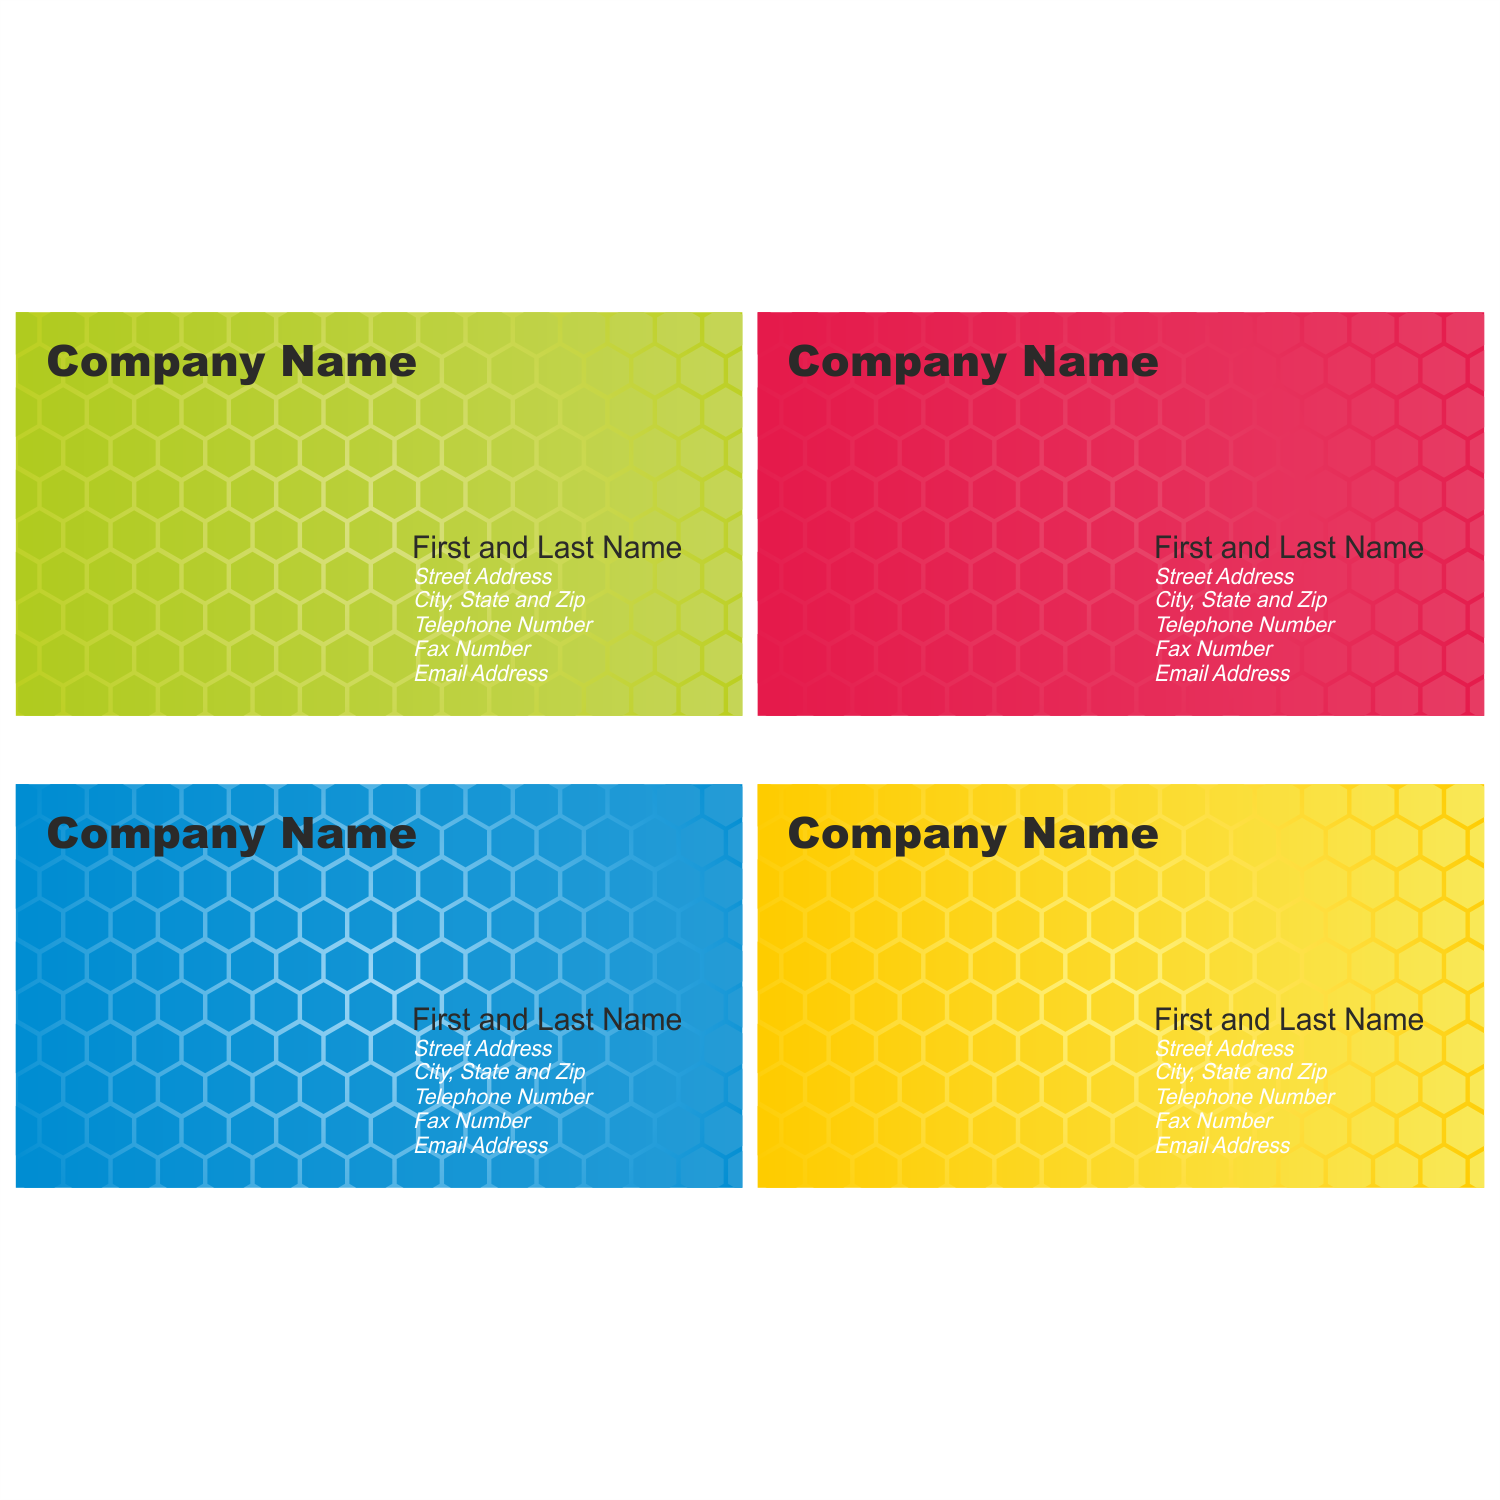 12 Business Card Design Templates Images